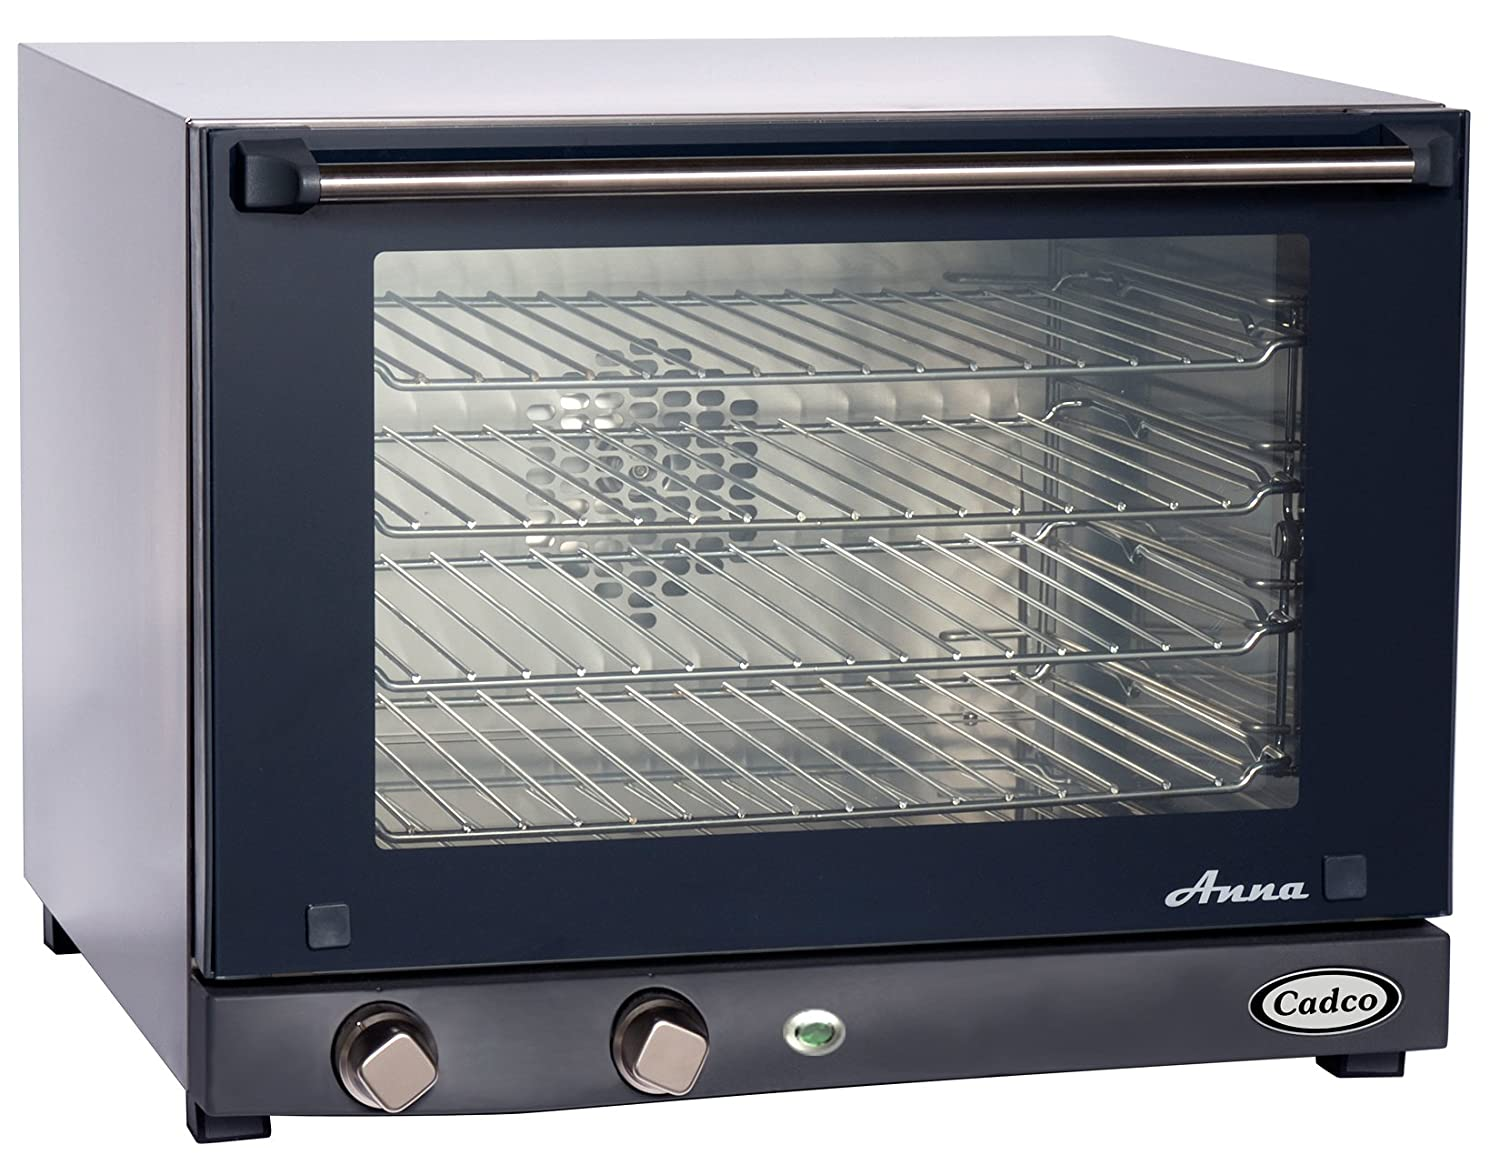 Cadco Countertop Convection Oven Thank You For Coming